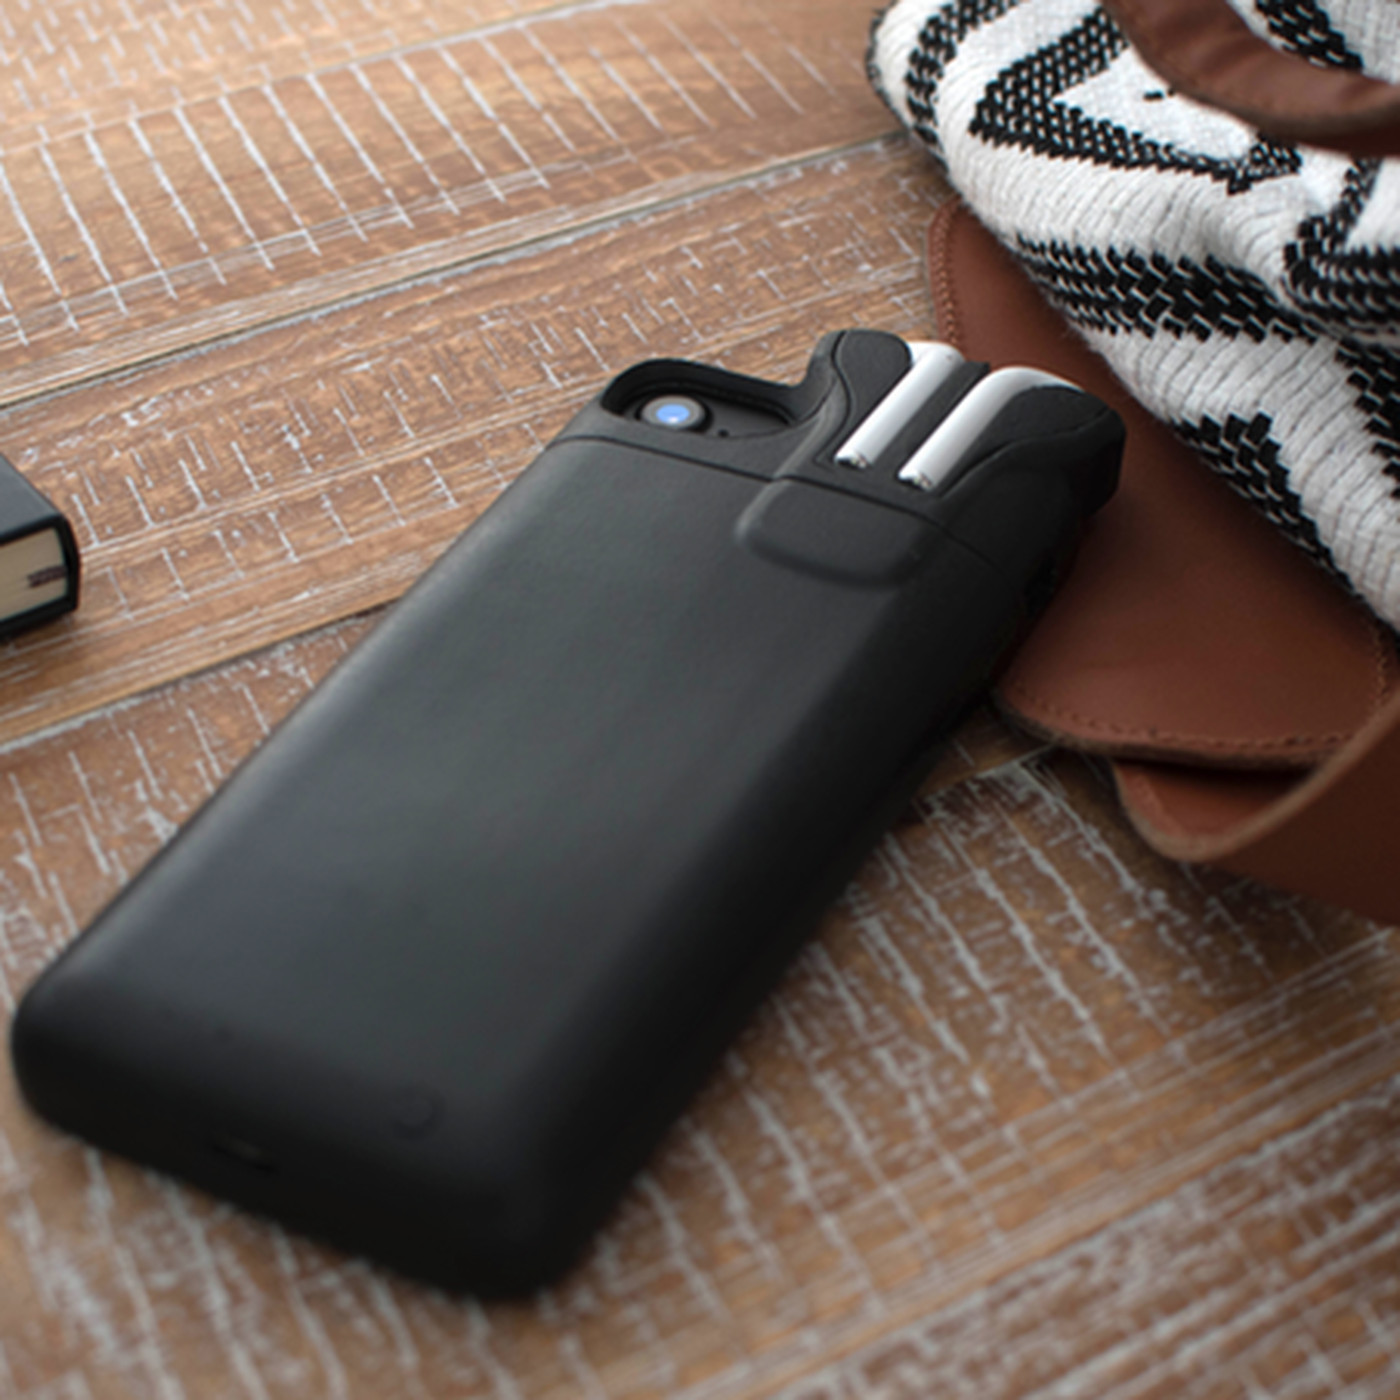 new product 373de ba465 Pebble creator made an iPhone case that can store and charge AirPods ...